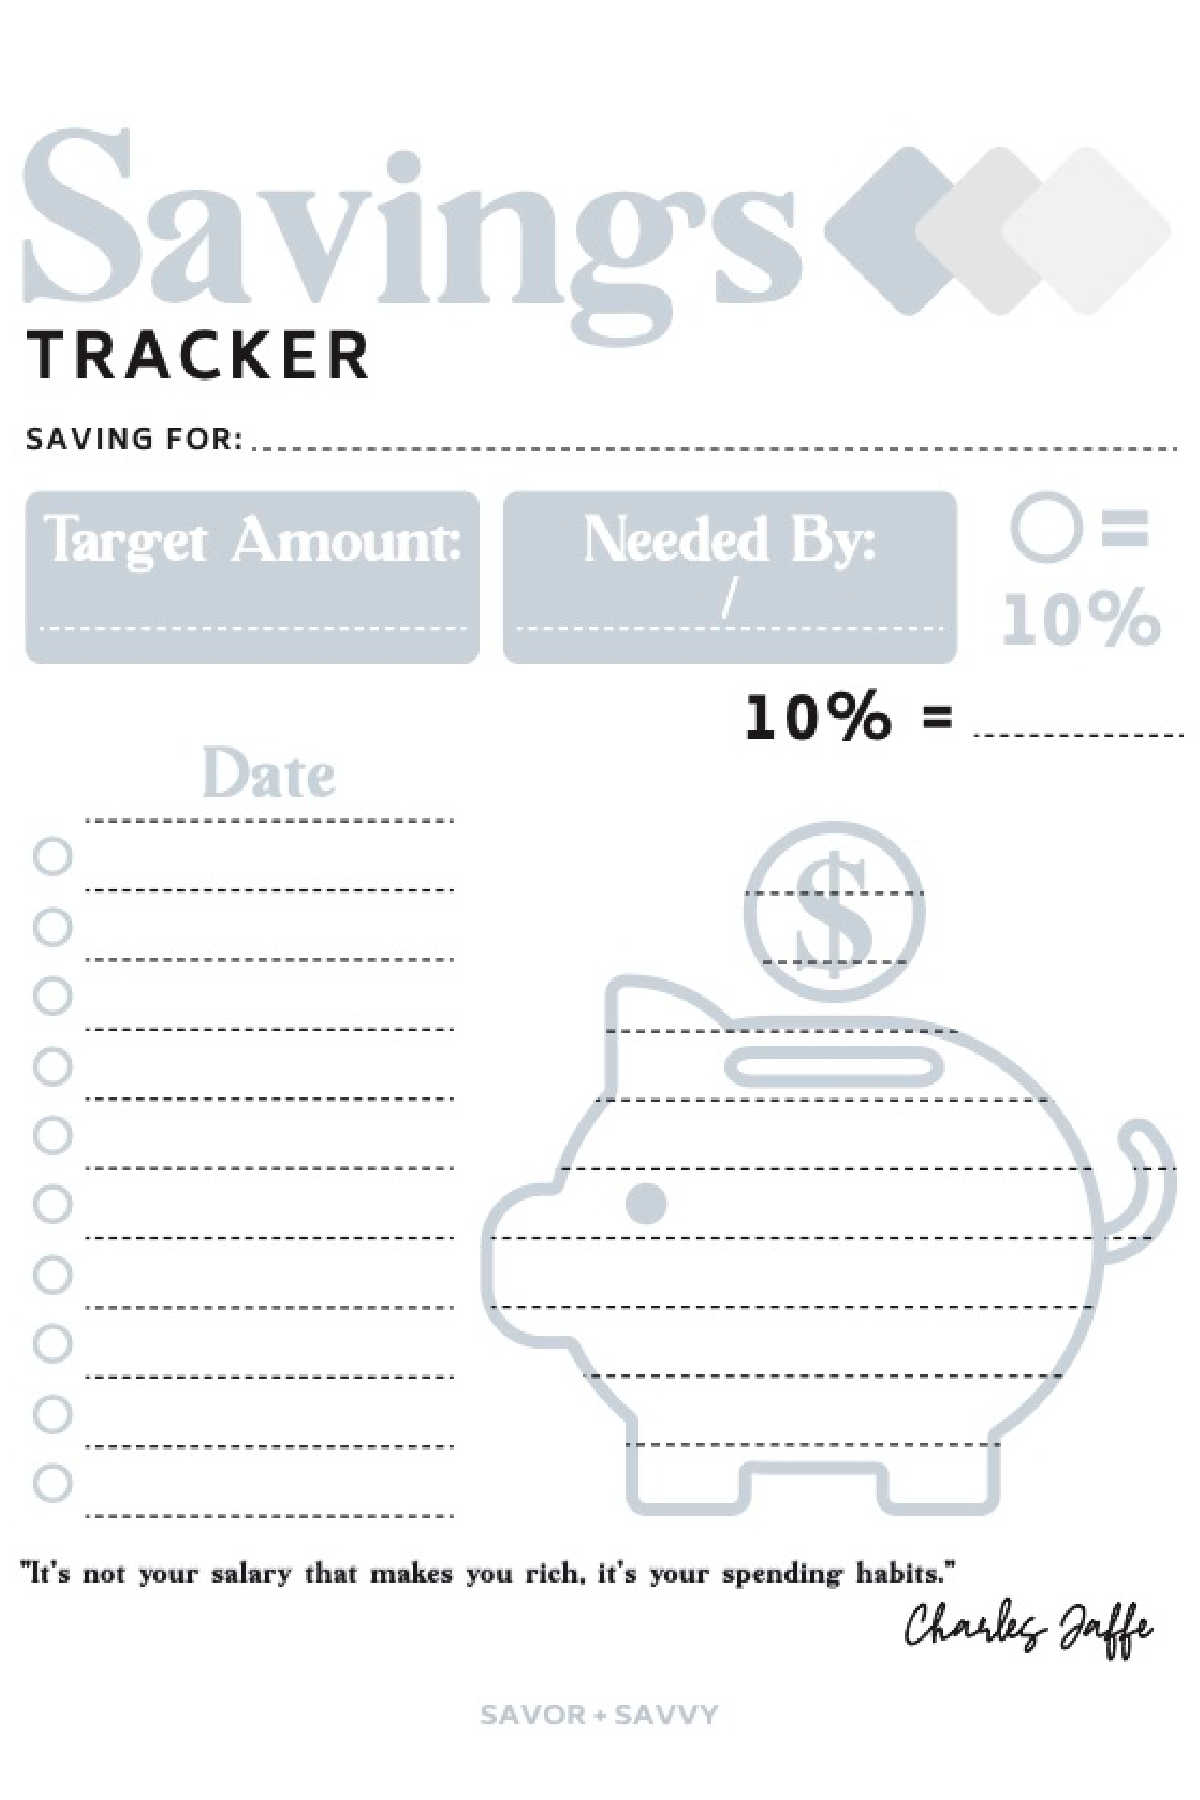 free savings tracker printable that is blank and ready to be filled out.